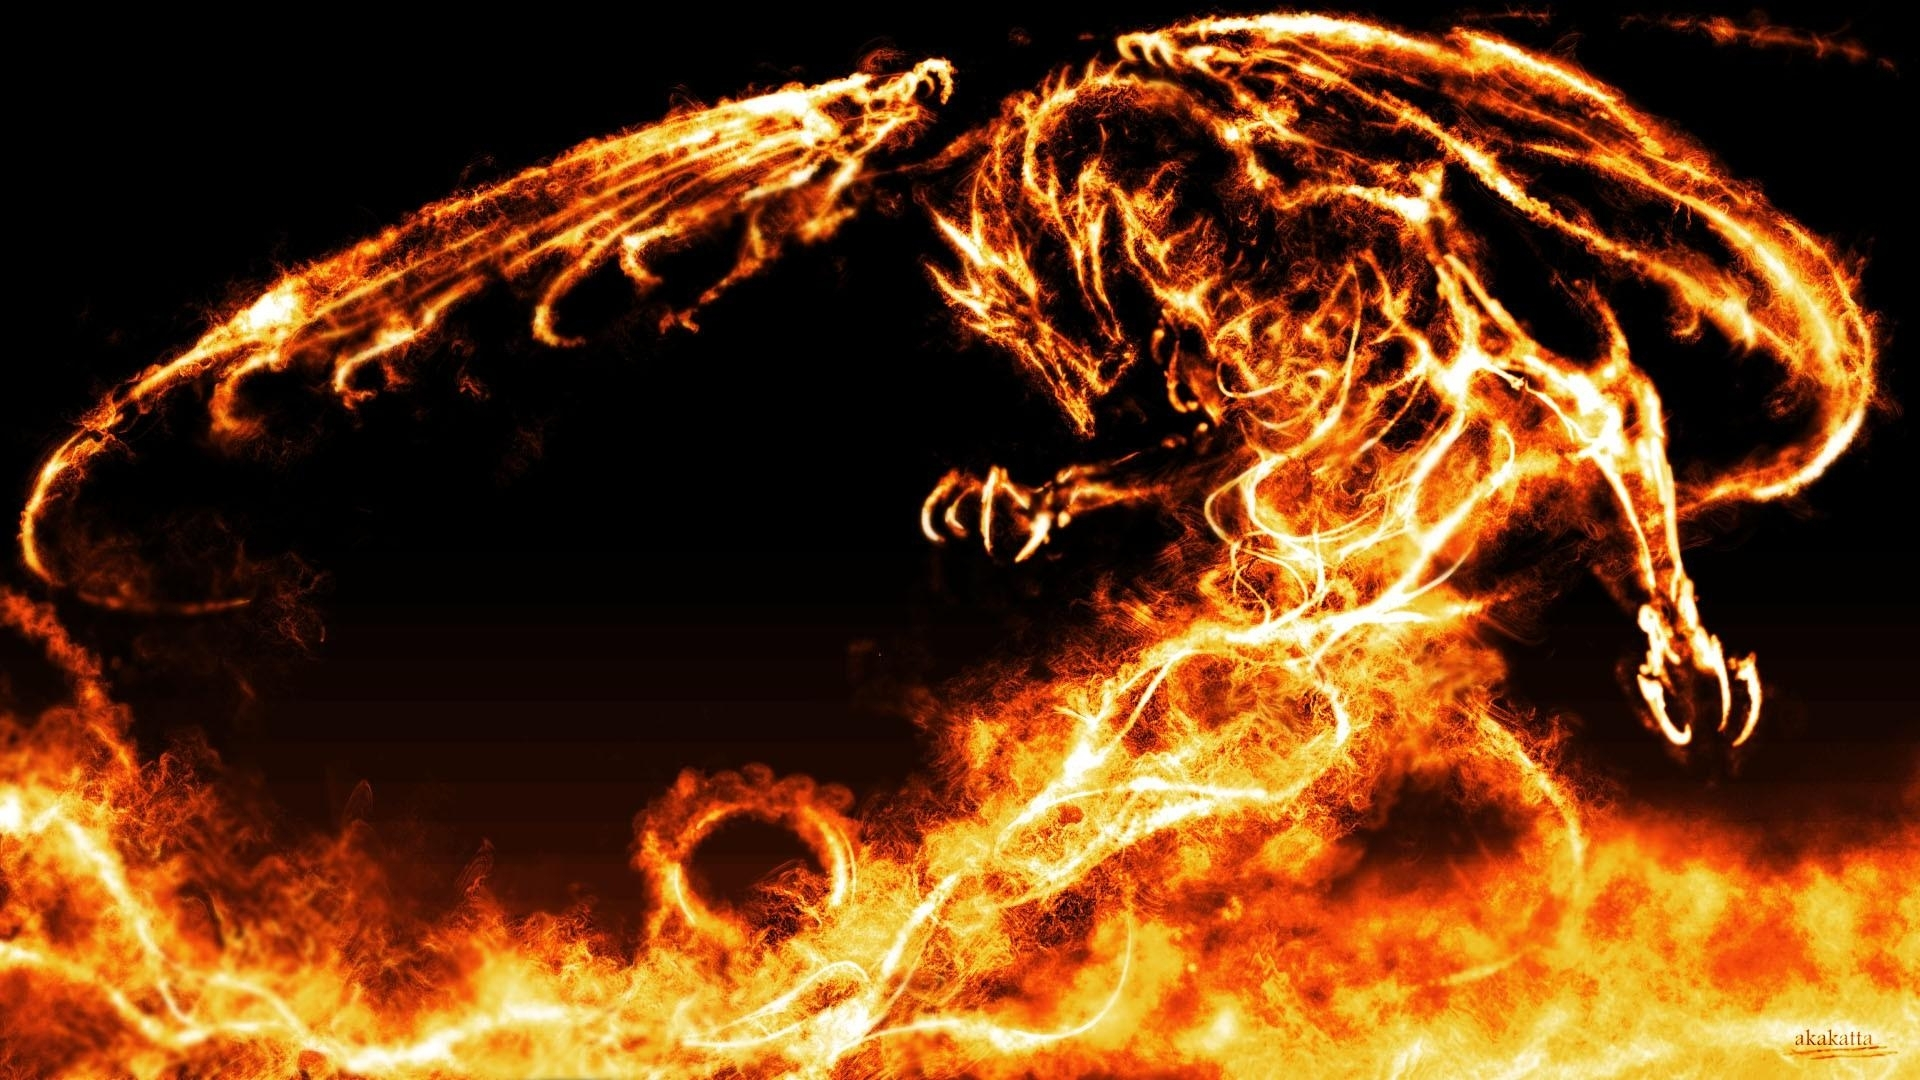 10 top fire dragon wallpapers 3d full hd 1920×1080 for pc background